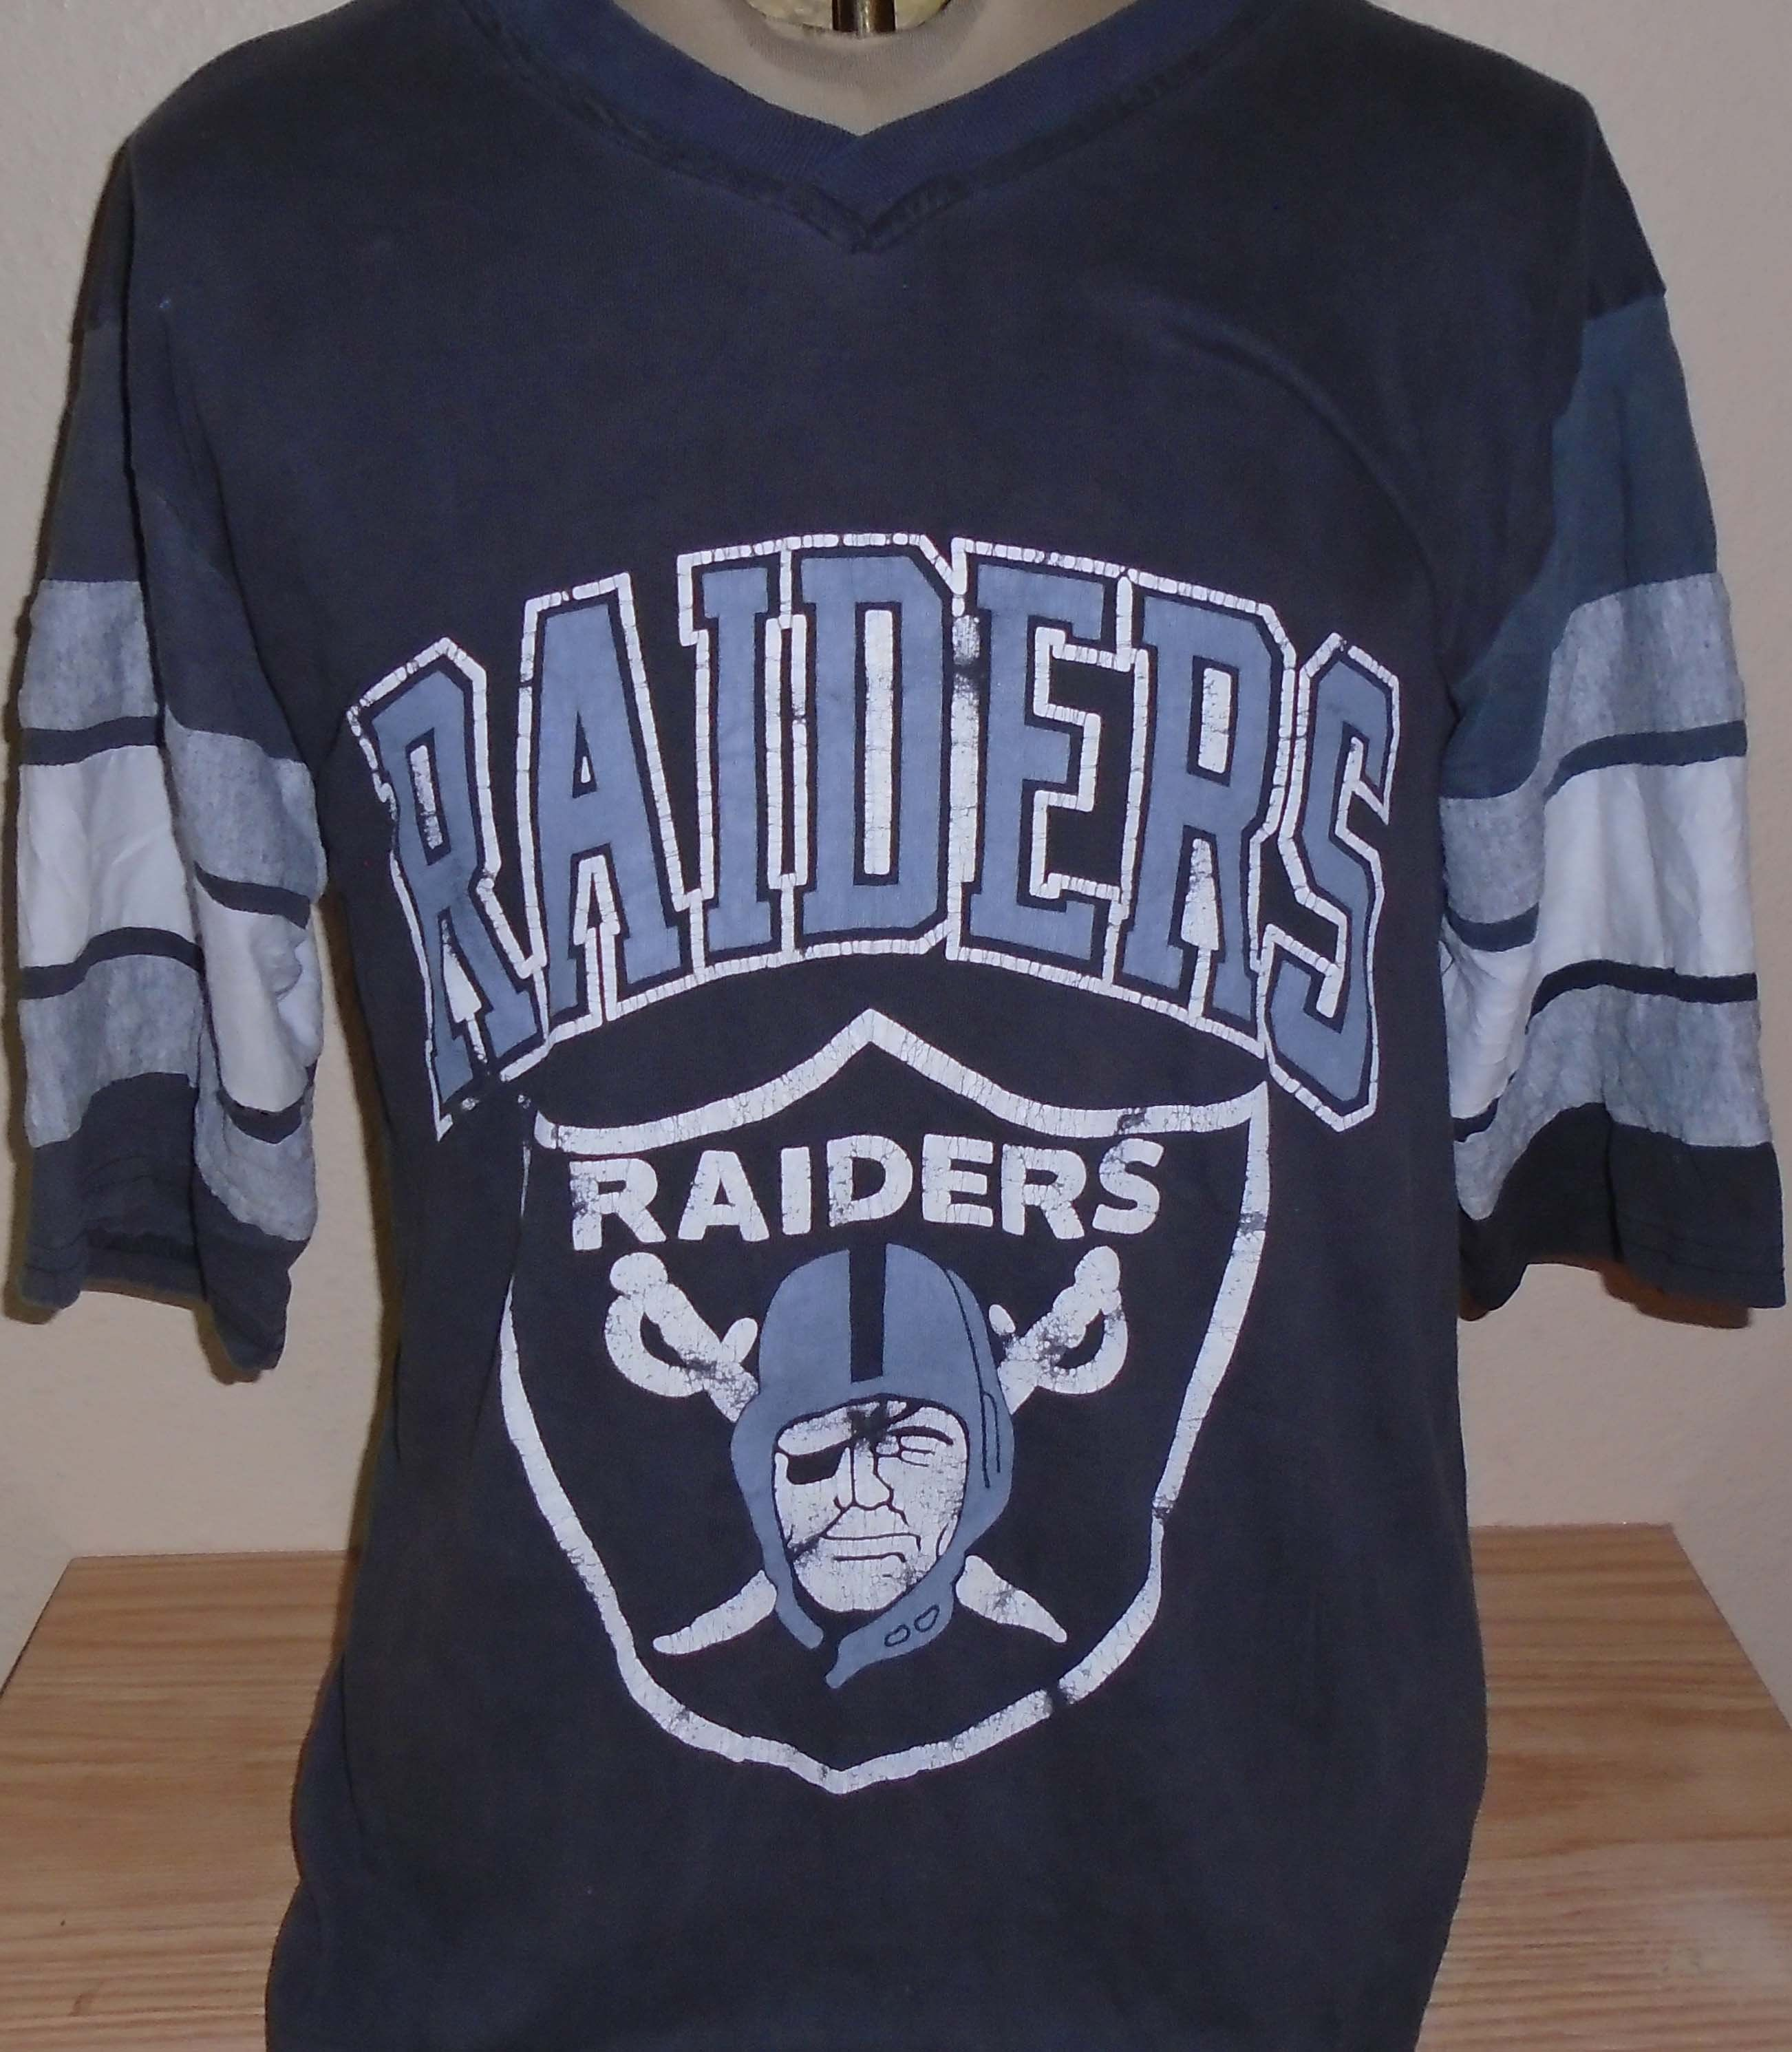 low priced dec05 d59ab vintage 1980s Oakland Raiders football jersey t shirt Large ...